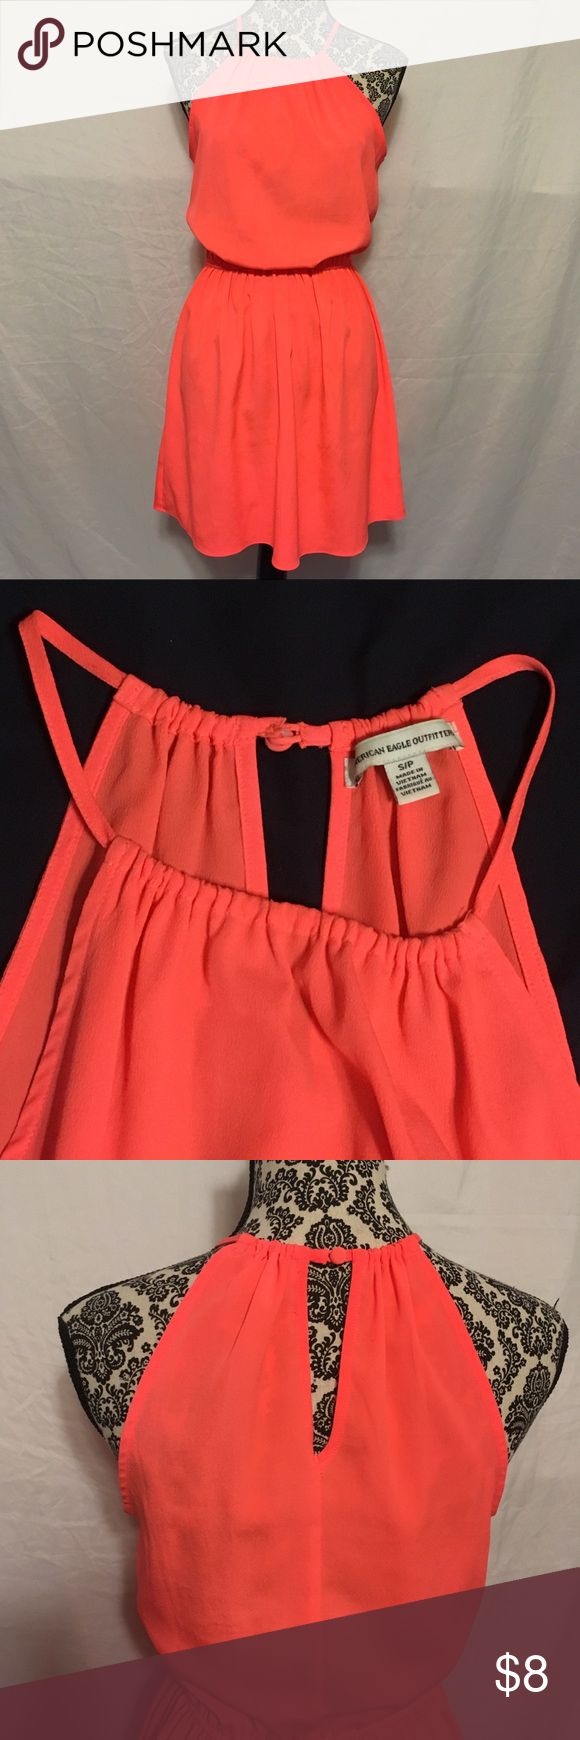 American Eagle Cinched Waist Coral Sundress In perfect condition! Coral in color *Bundle & Save - shipped within 24 hours American Eagle Outfitters Dresses Mini